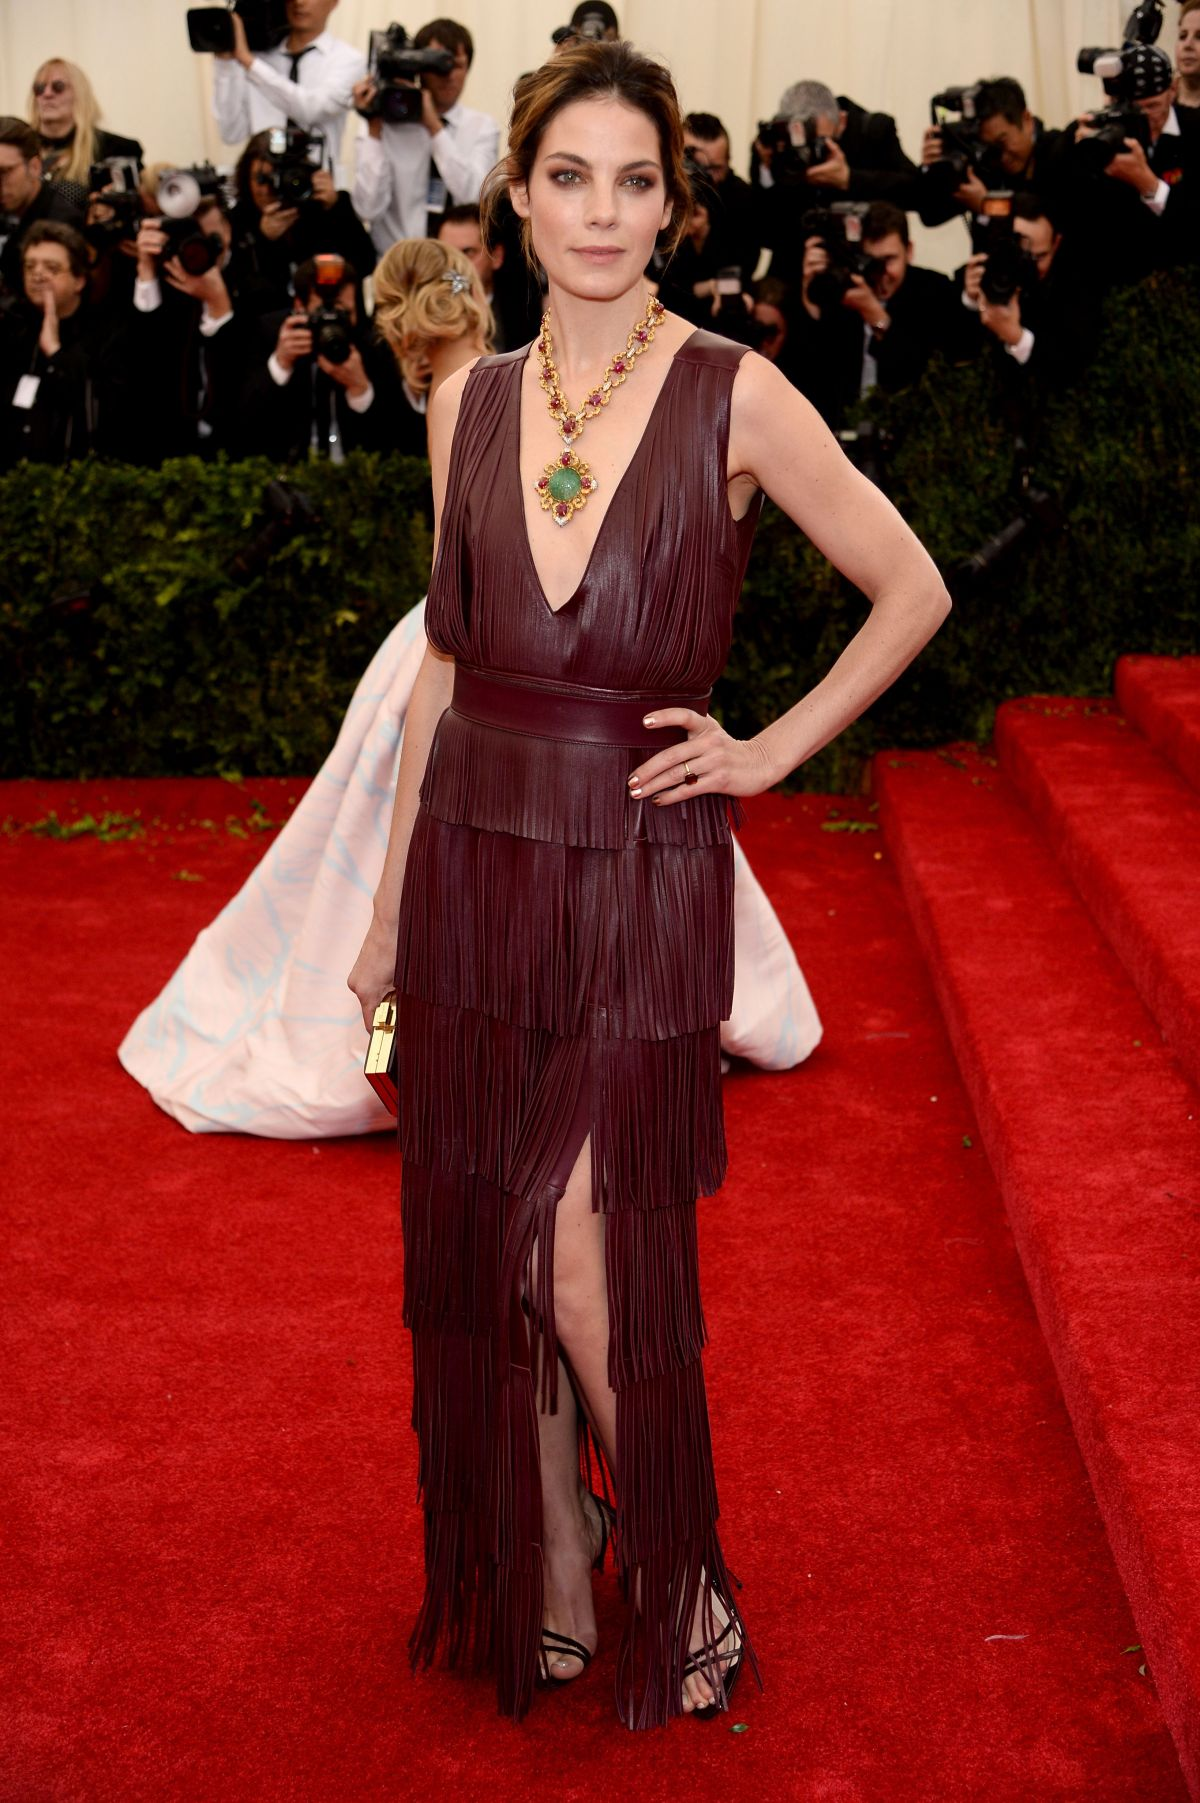 MICHELLE MONAGHAN at MET Gala 2014 in New York